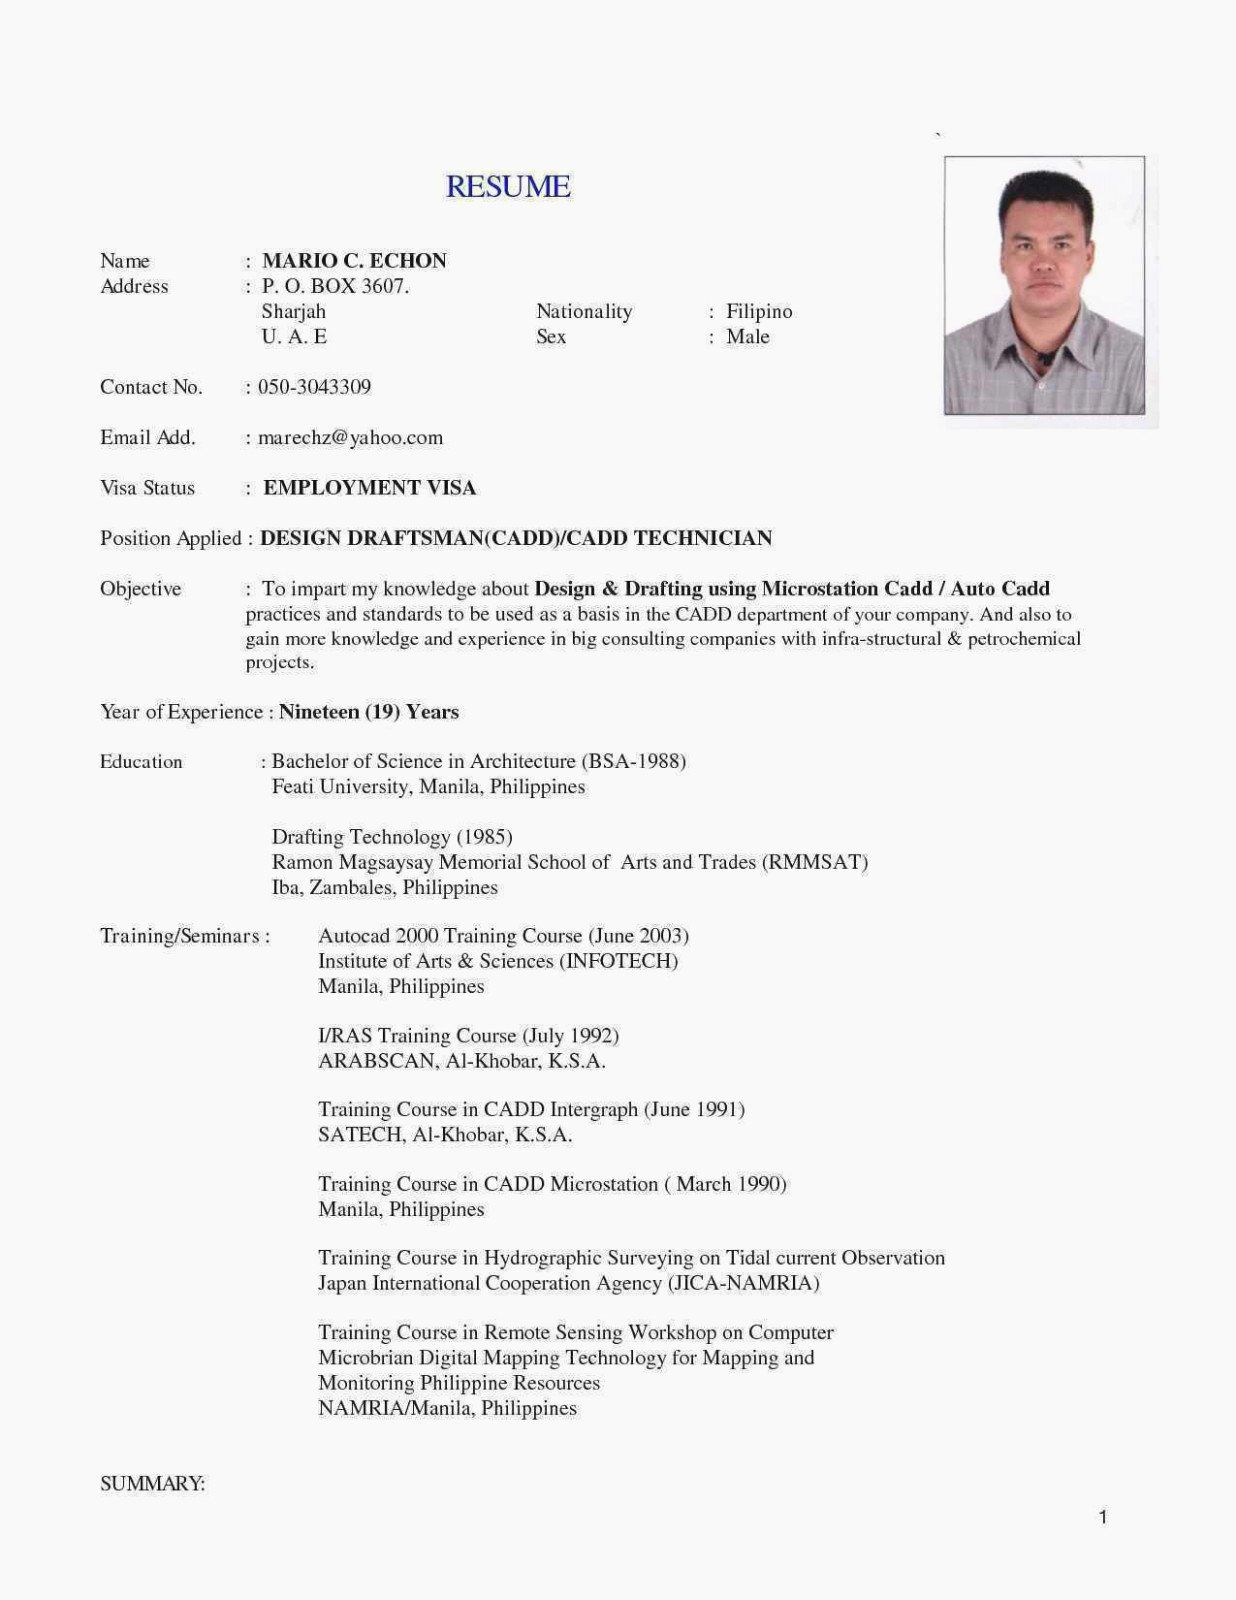 Review this sample resume for a laboratory technician to